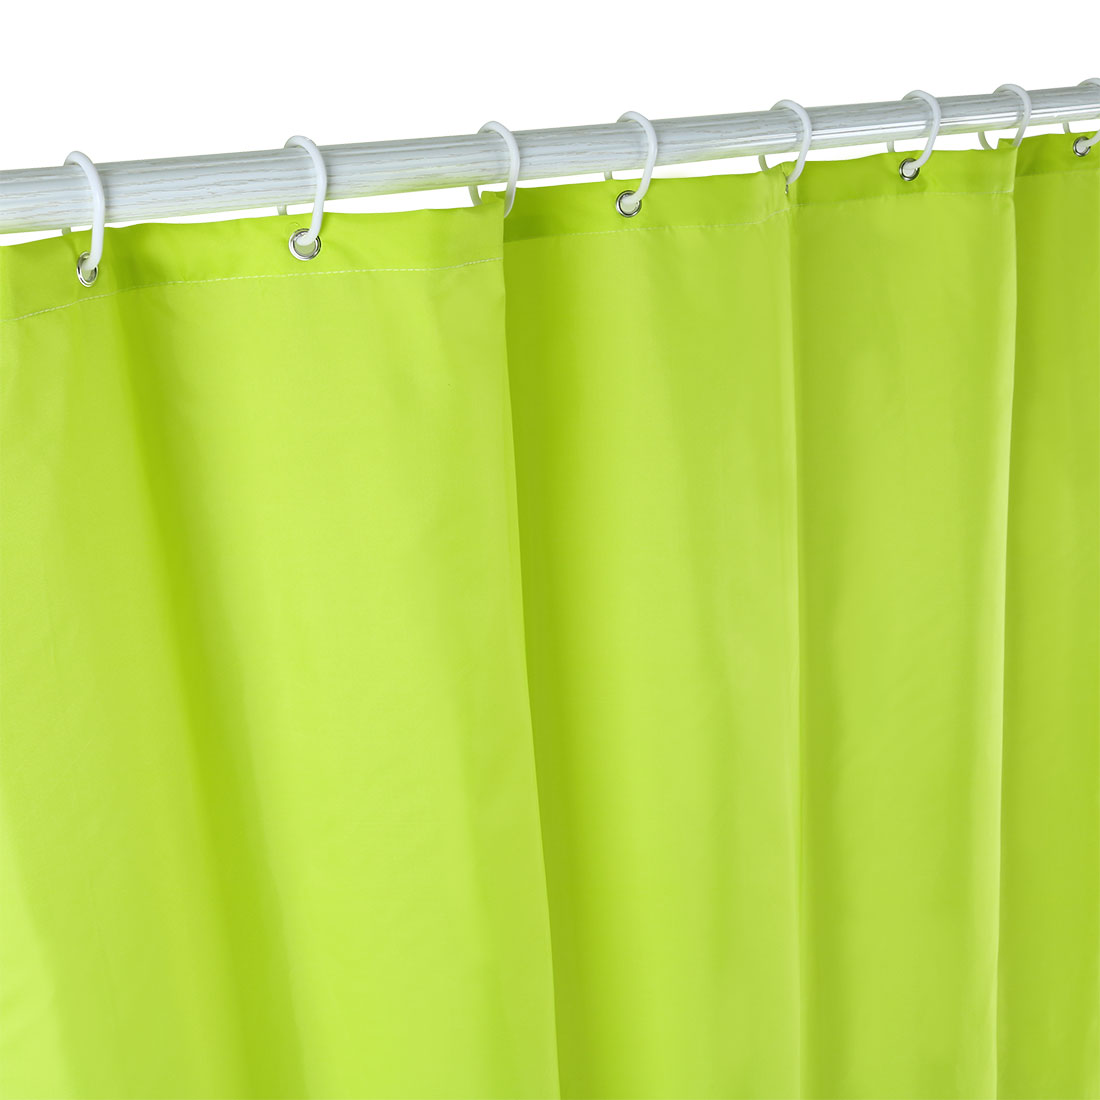 Solid Color Polyester Fabric Shower Curtain with Hooks Green 72 x 78 Inch - image 3 of 8